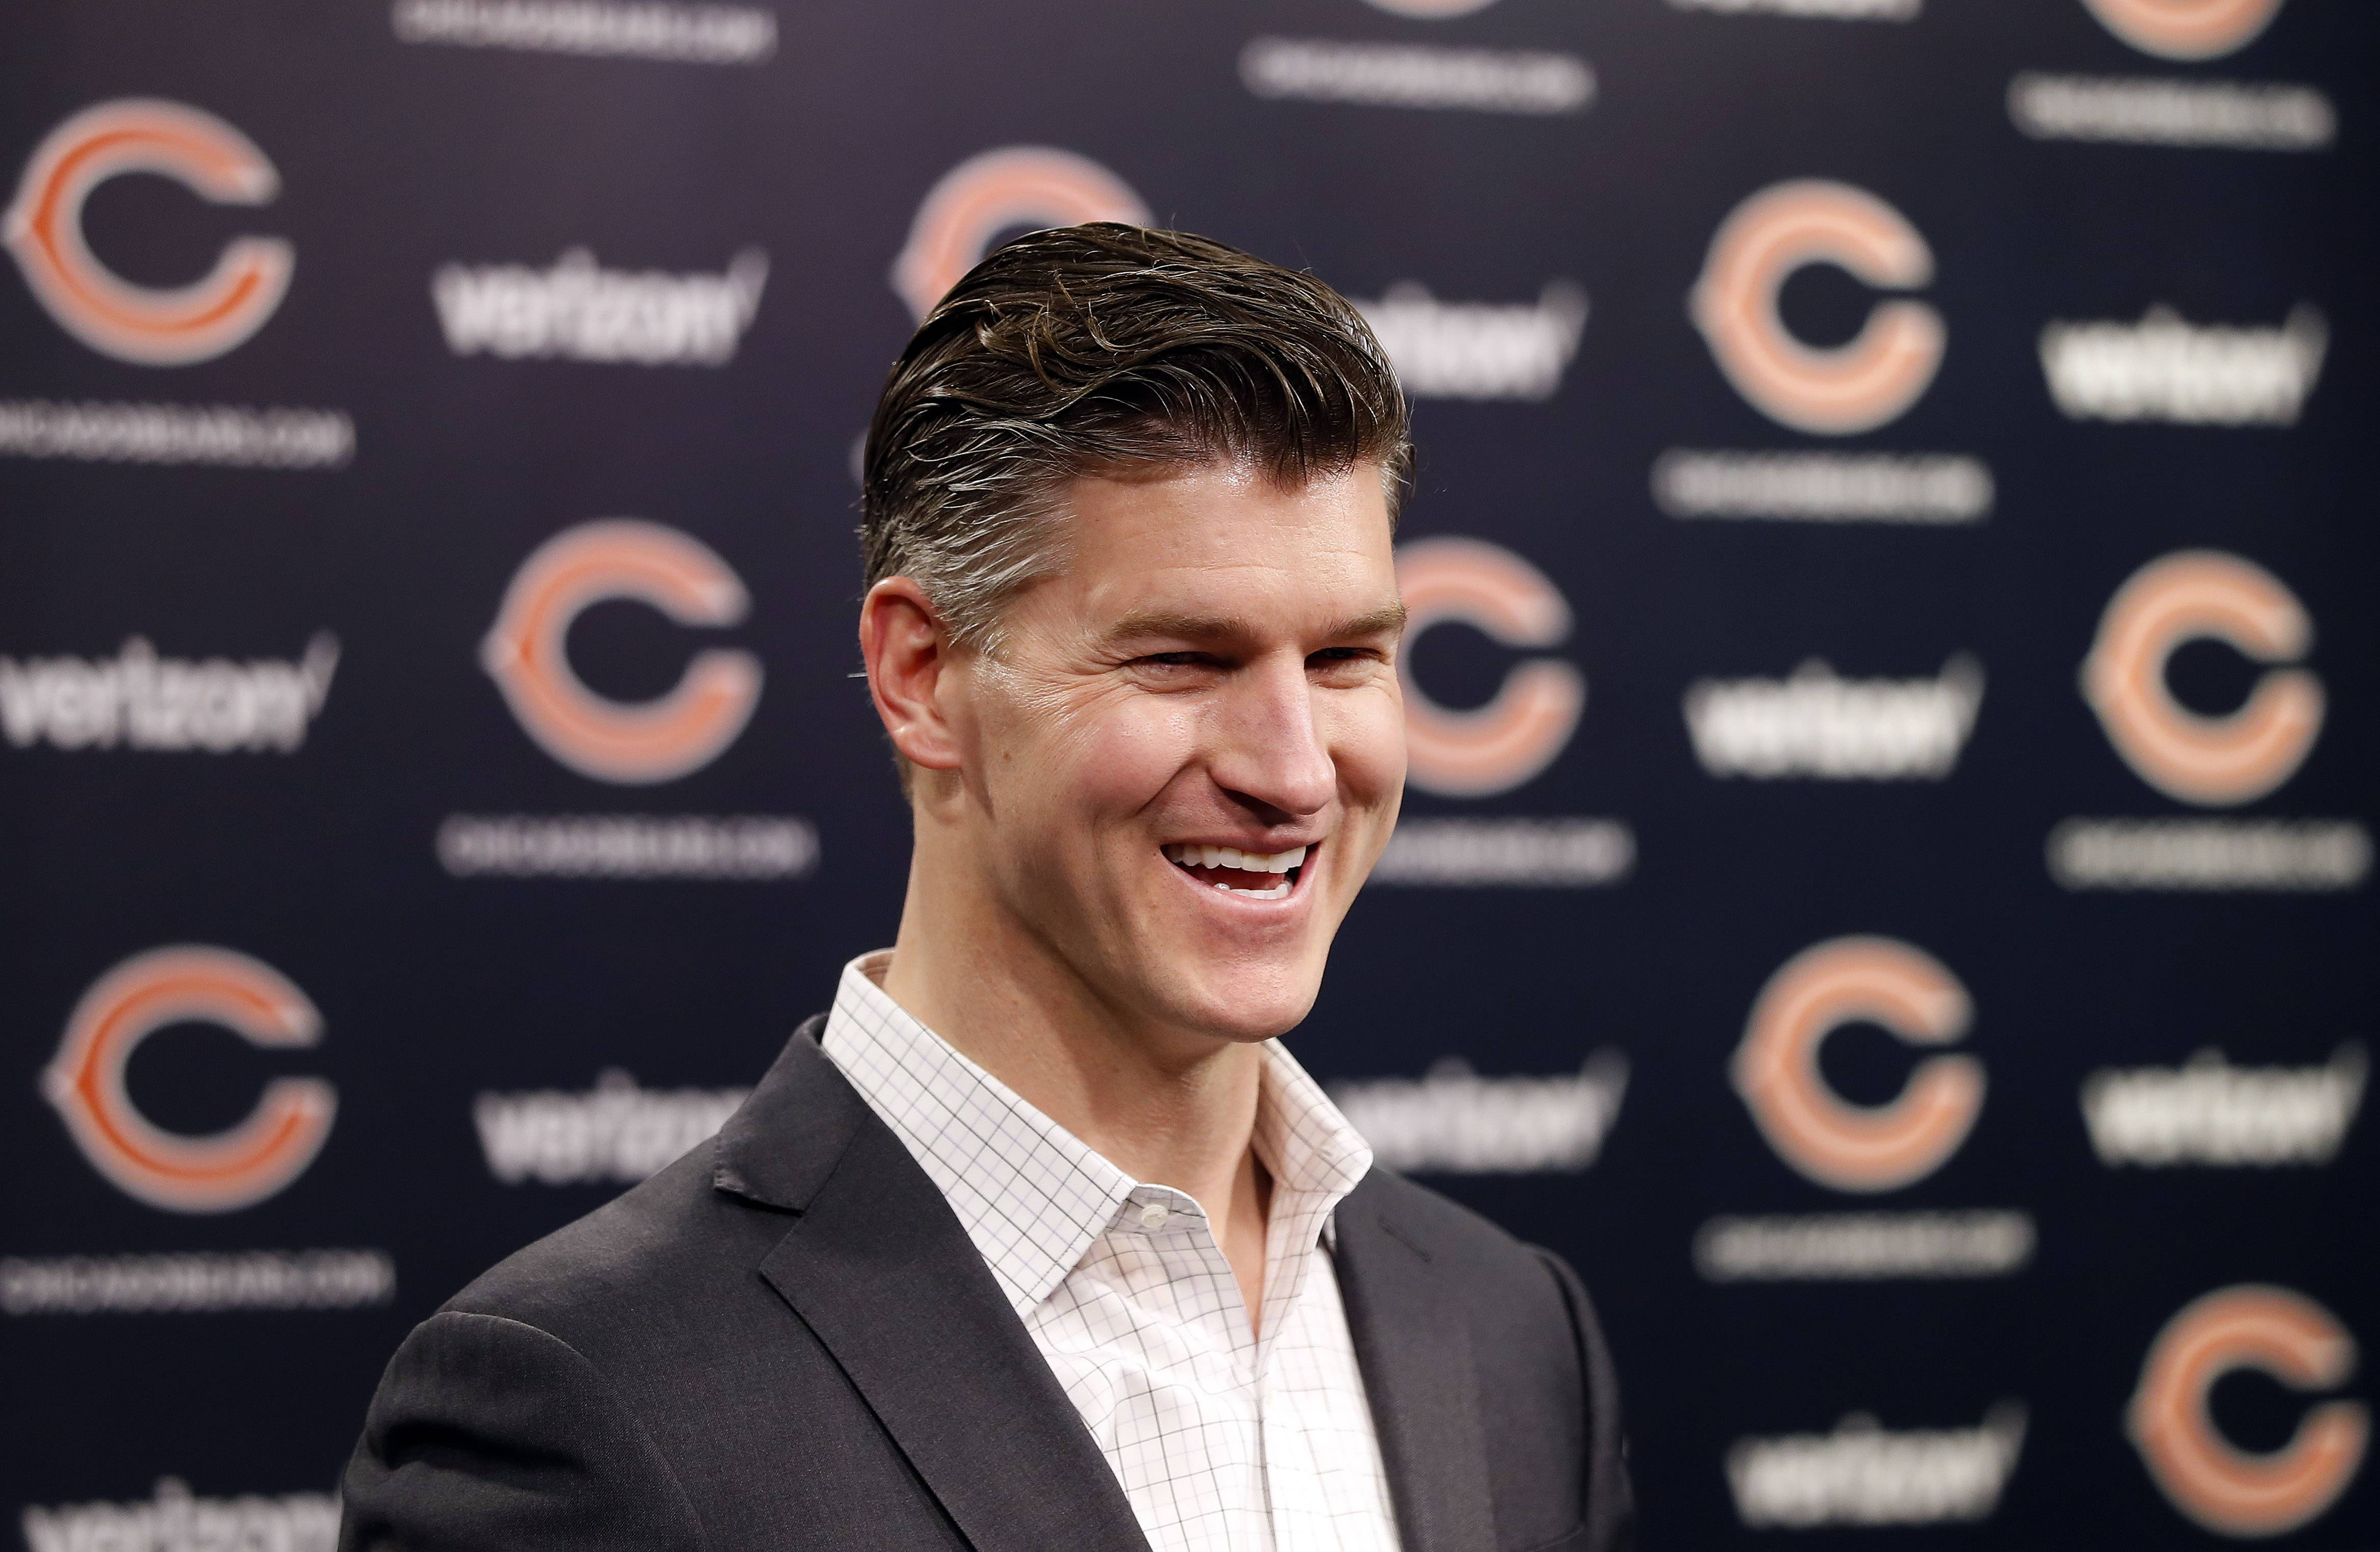 Chicago Bears general manager Ryan Pace has the No. 8 overall pick in Thursday's first round of the NFL draft.